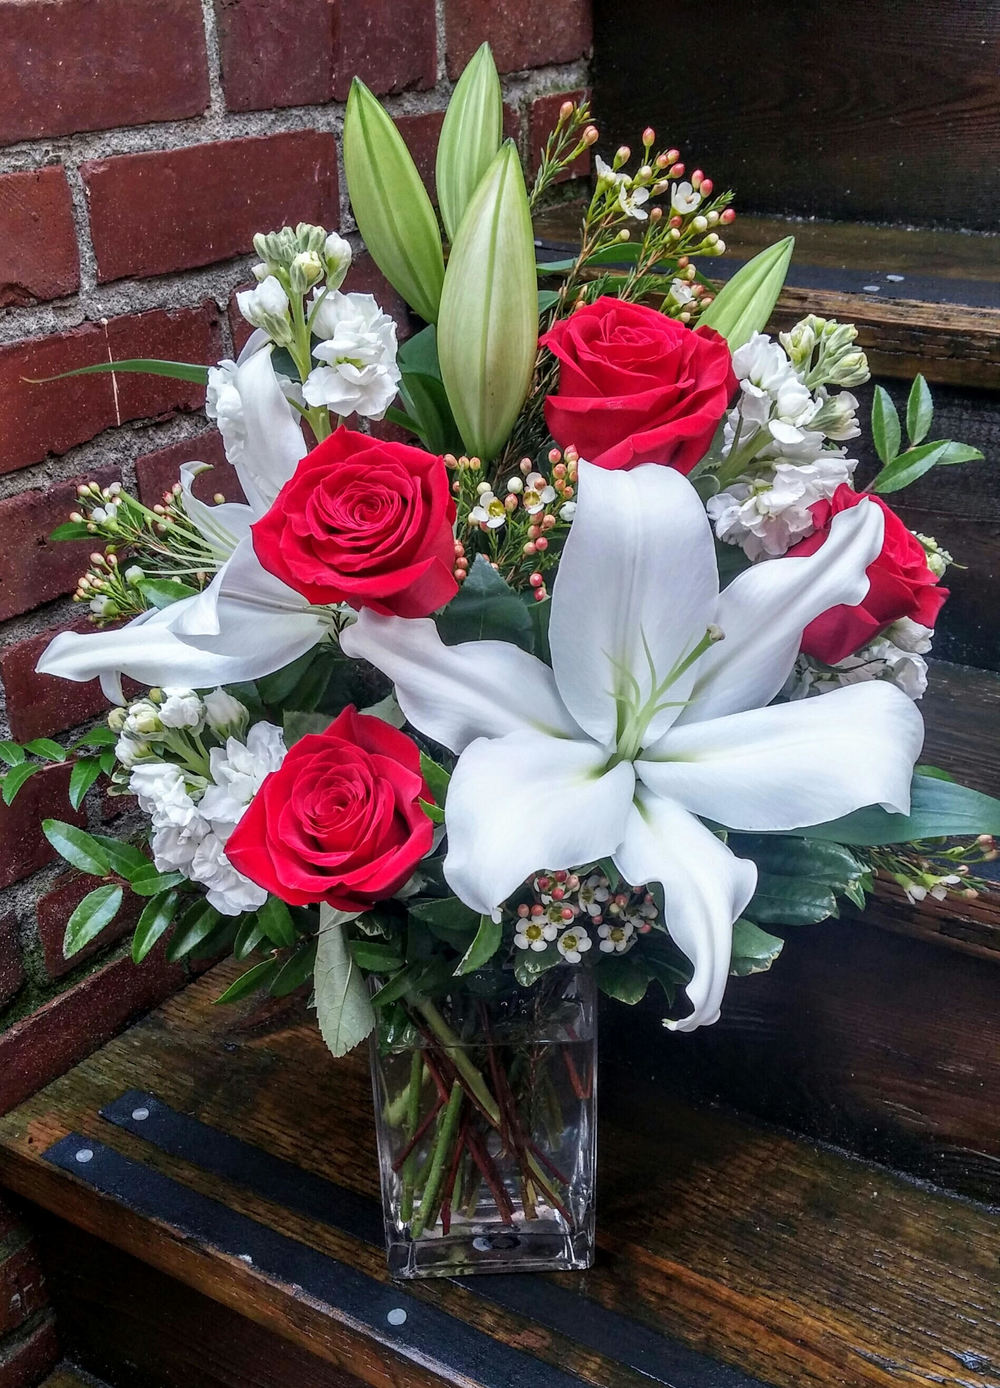 17. Traditional Romantic White and Red Bouquet